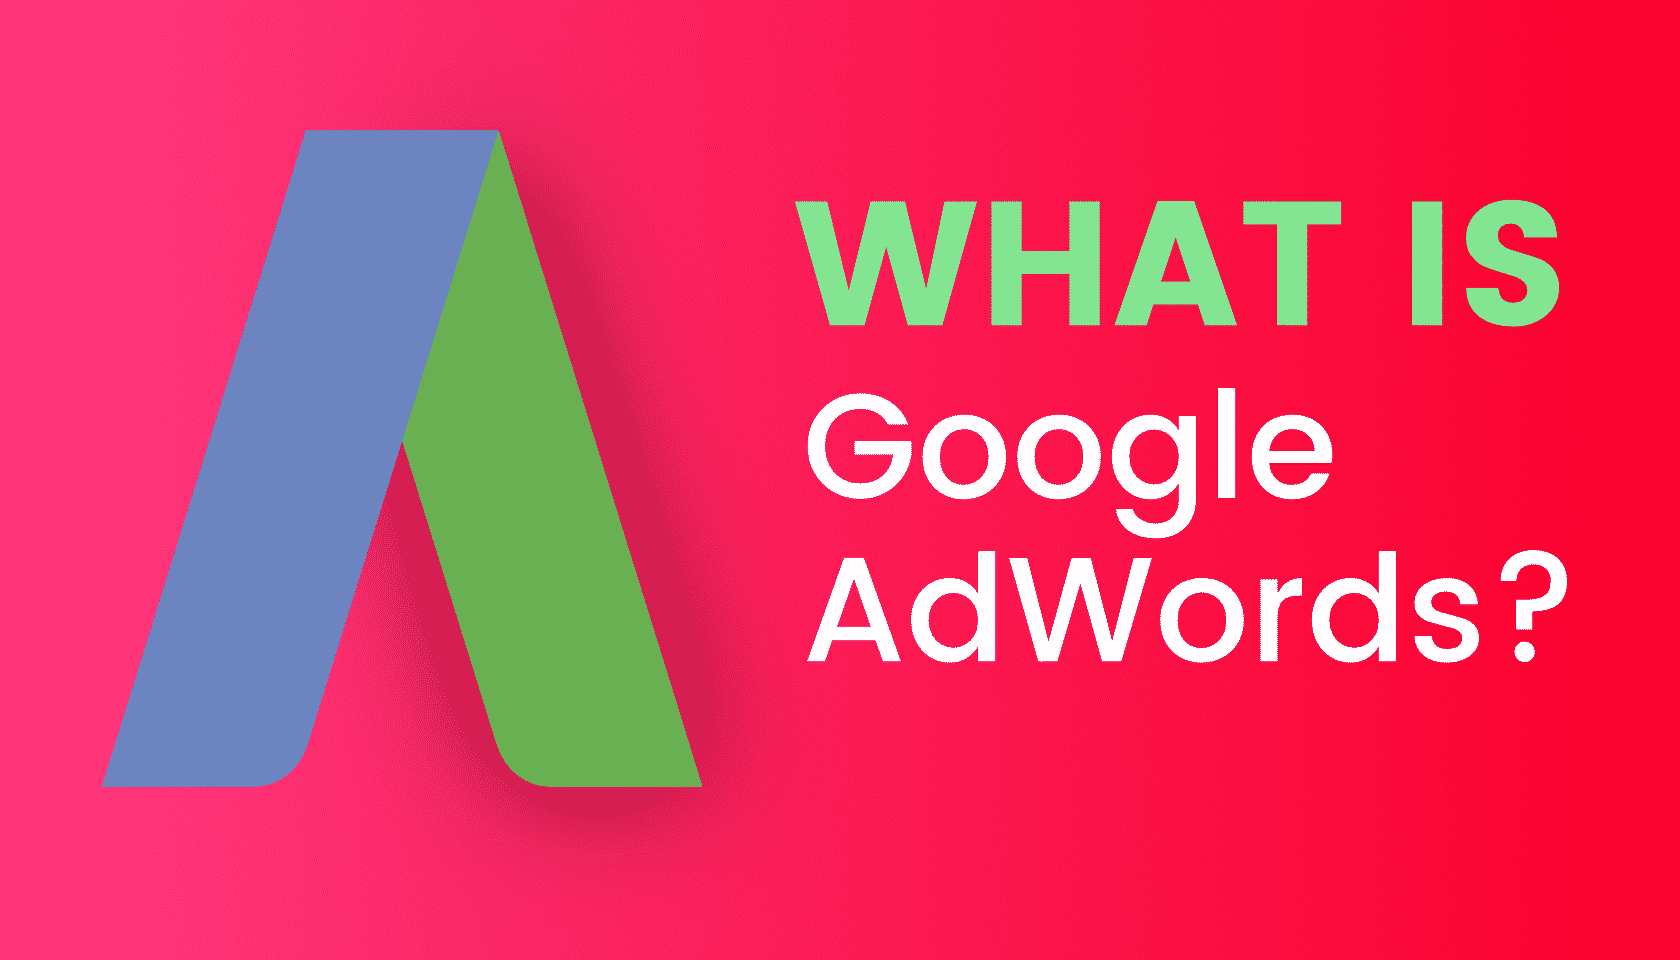 What is: Google AdWords?